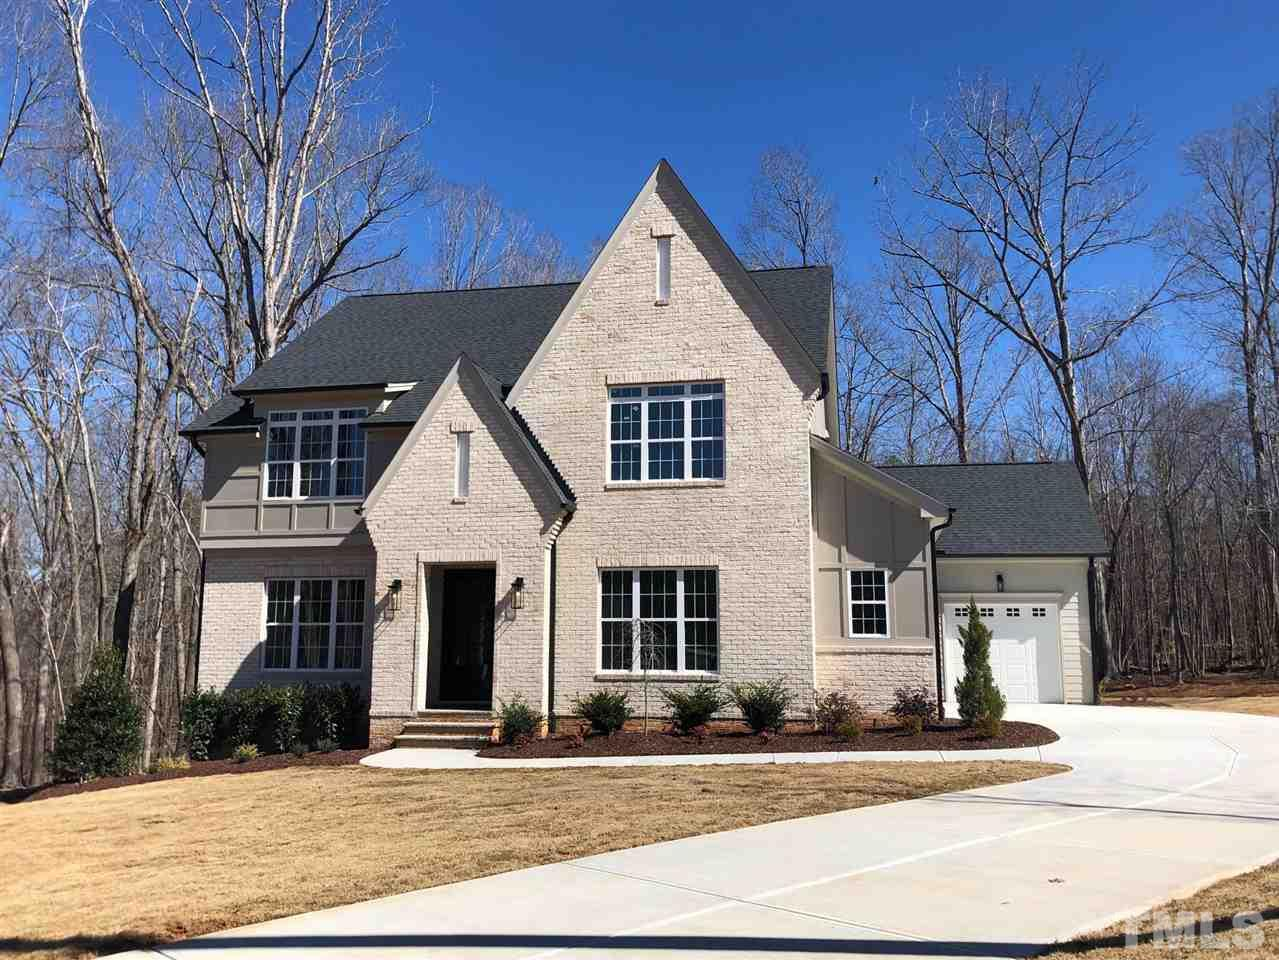 6225 Old Miravalle Court, Miravalle, Raleigh, NC